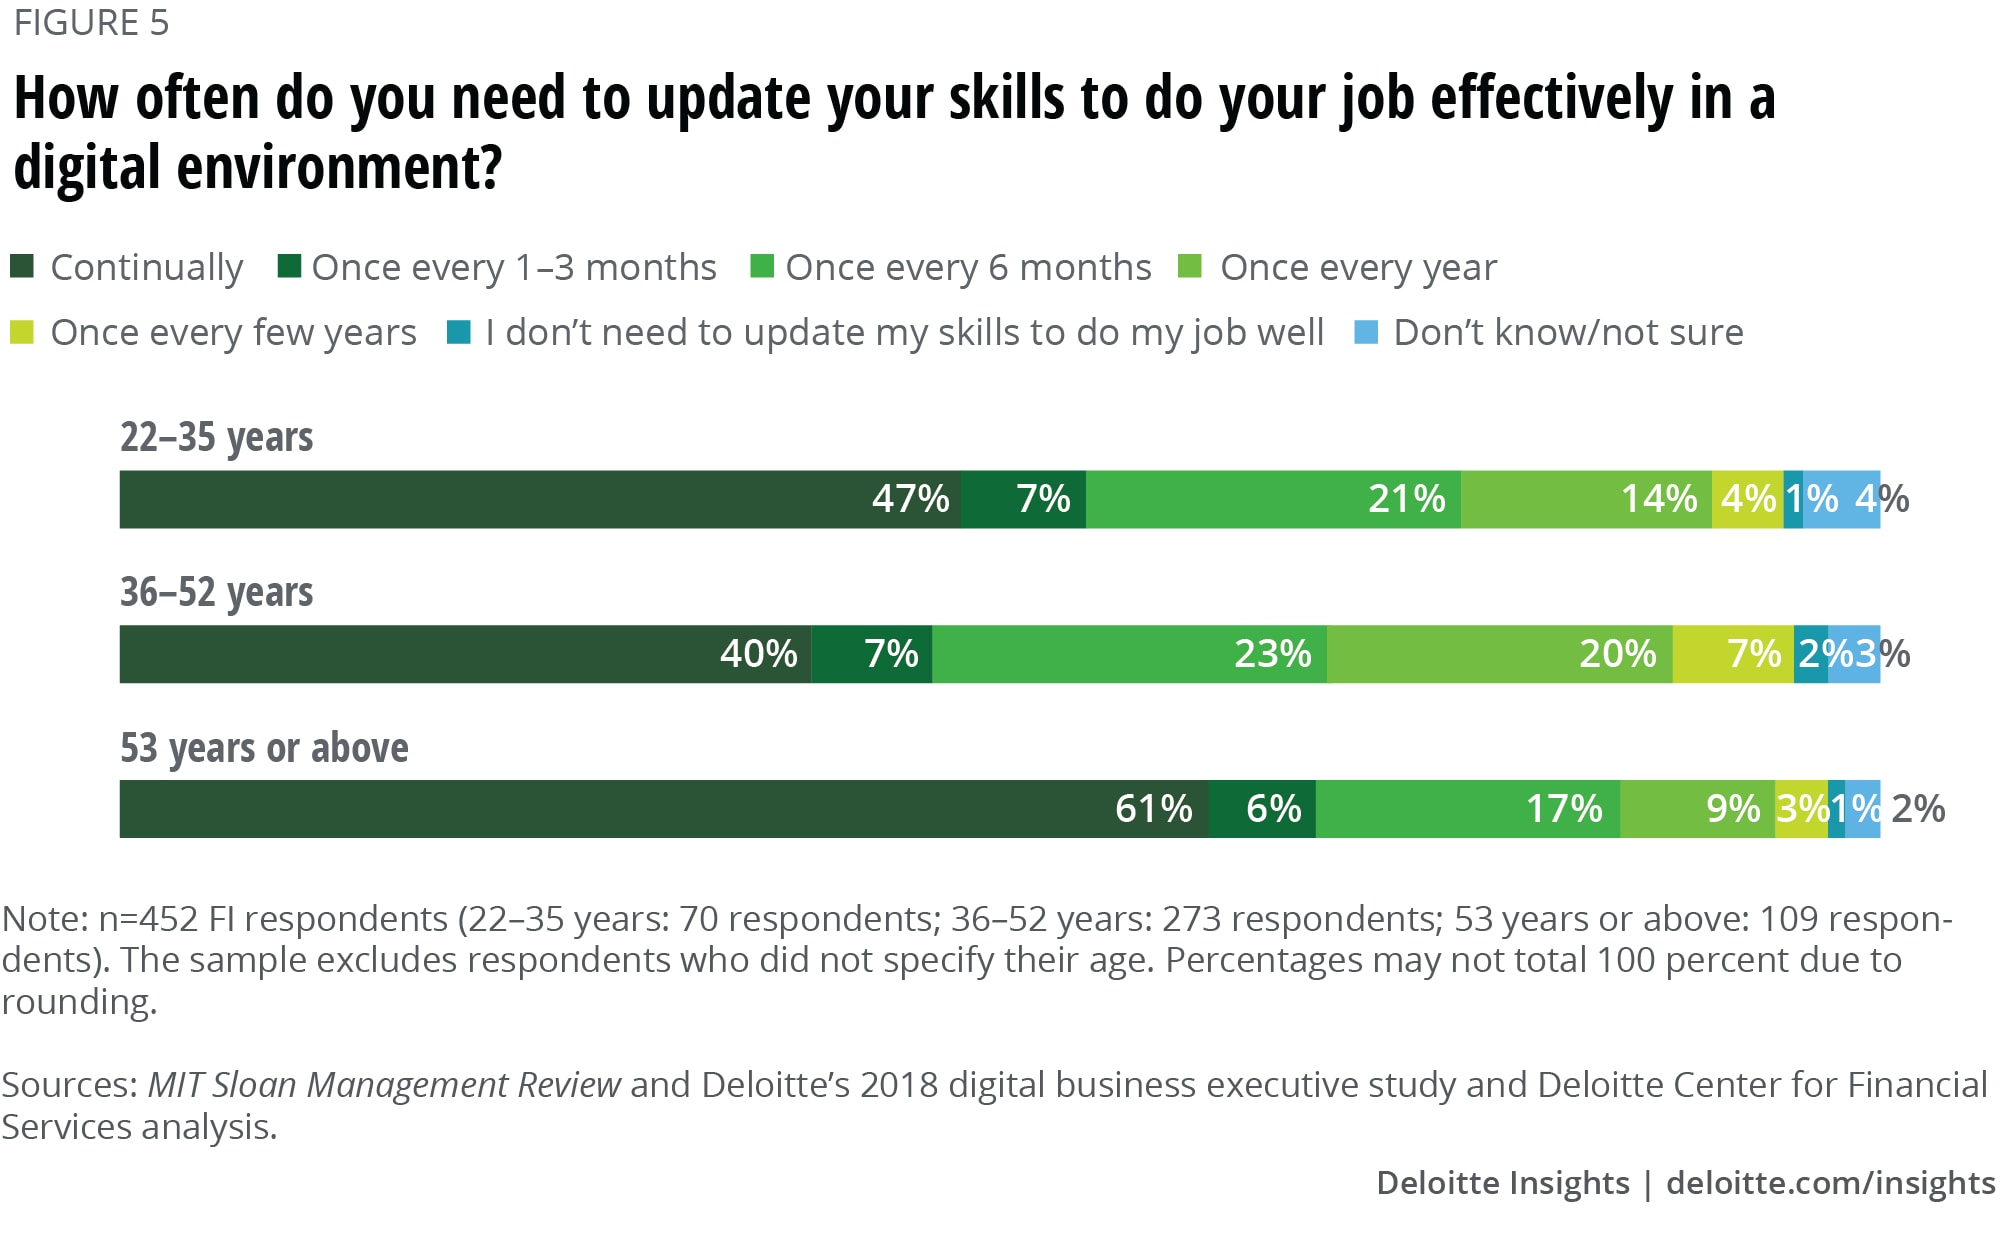 How often do you need to update your skills to do your job effectively in a digital environment?